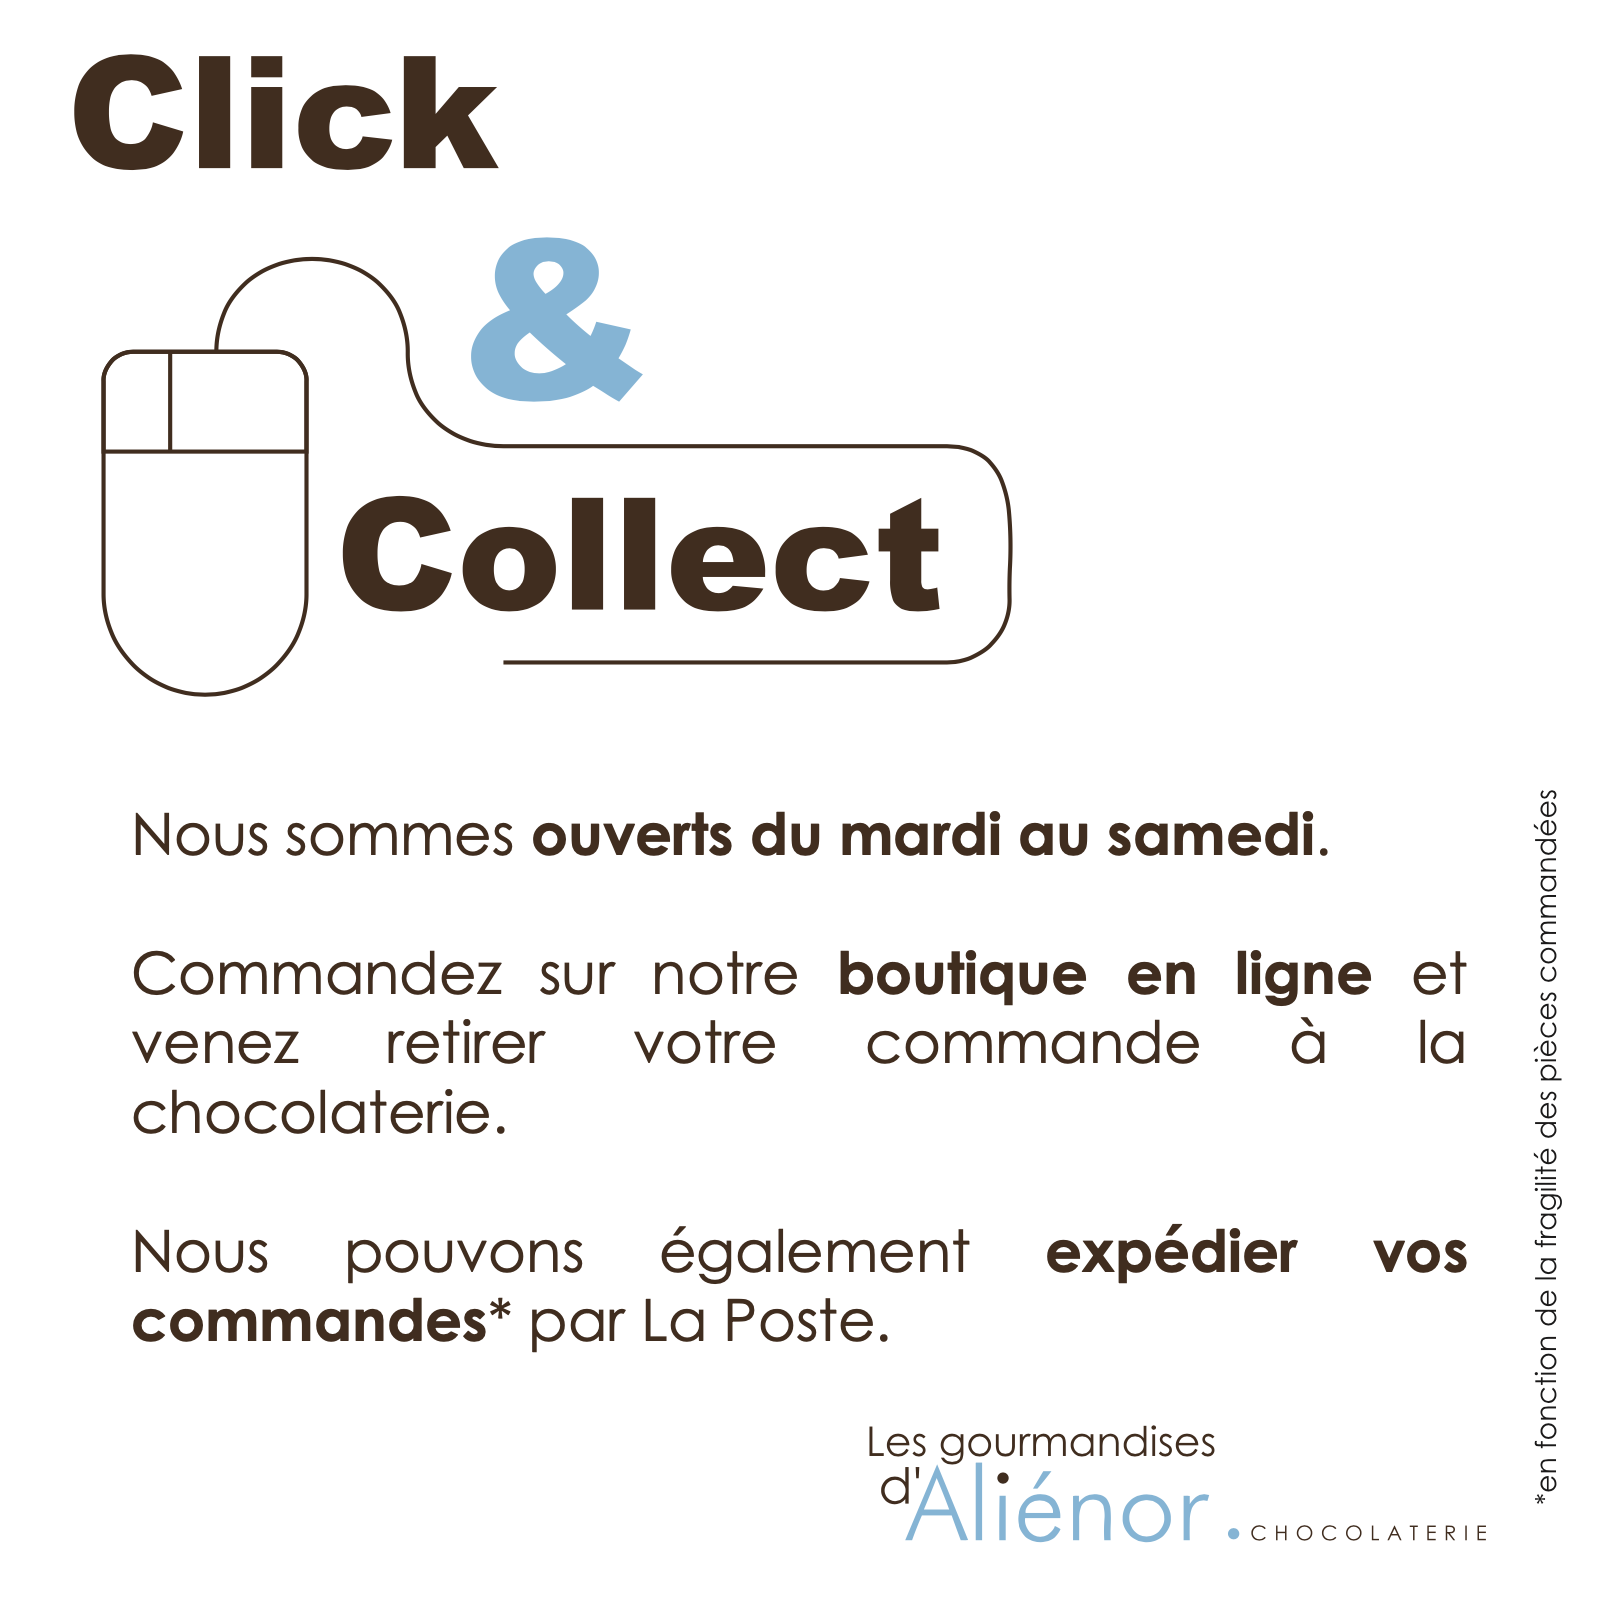 Click and Collect à la chocolaterie